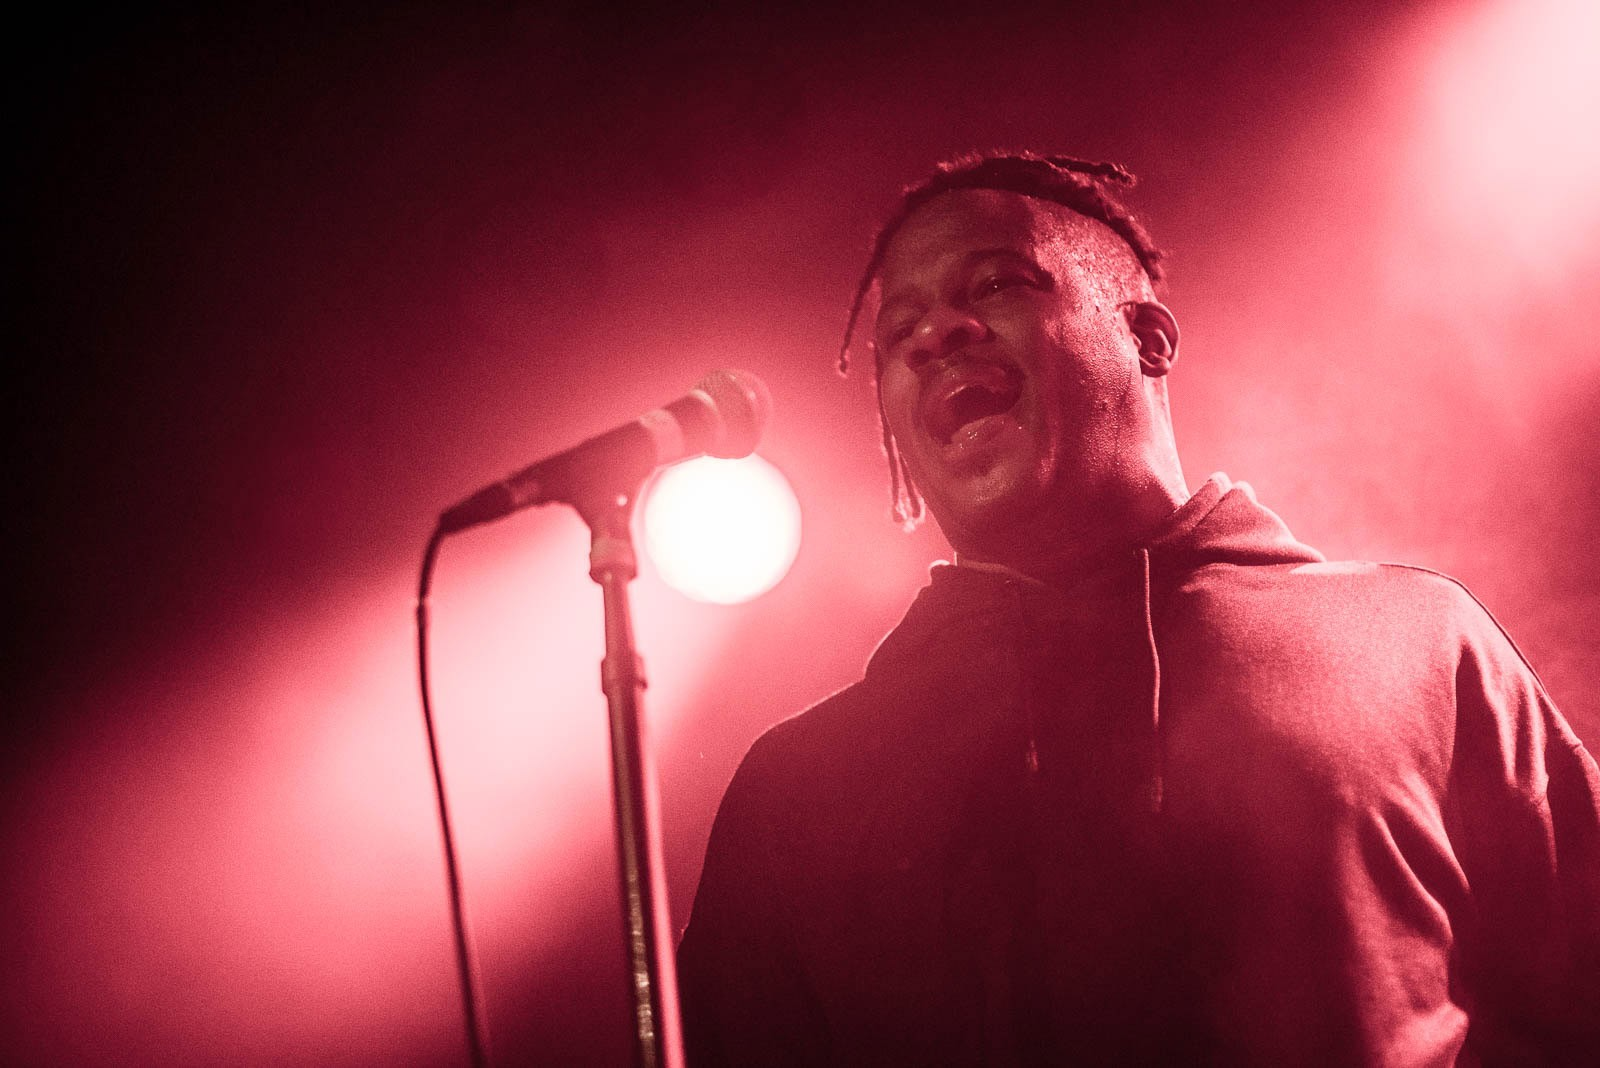 Open Mike Eagle at Music Hall of Williamsburg on Monday, February 5, 2018.